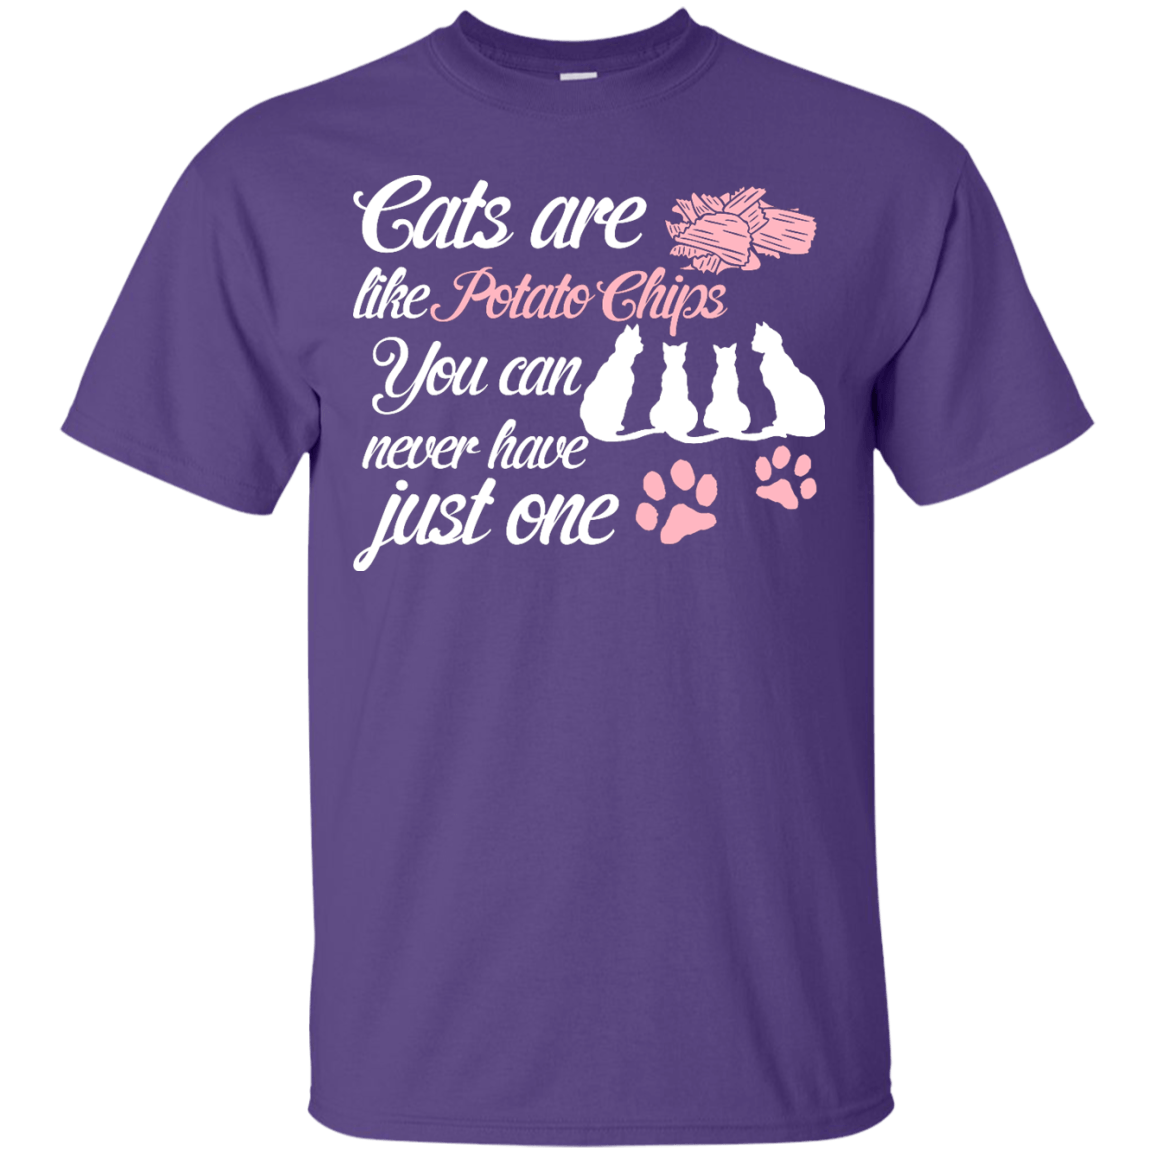 Cats Are Like Potato Chips themed T-Shirts and Hoodies for Men and Women